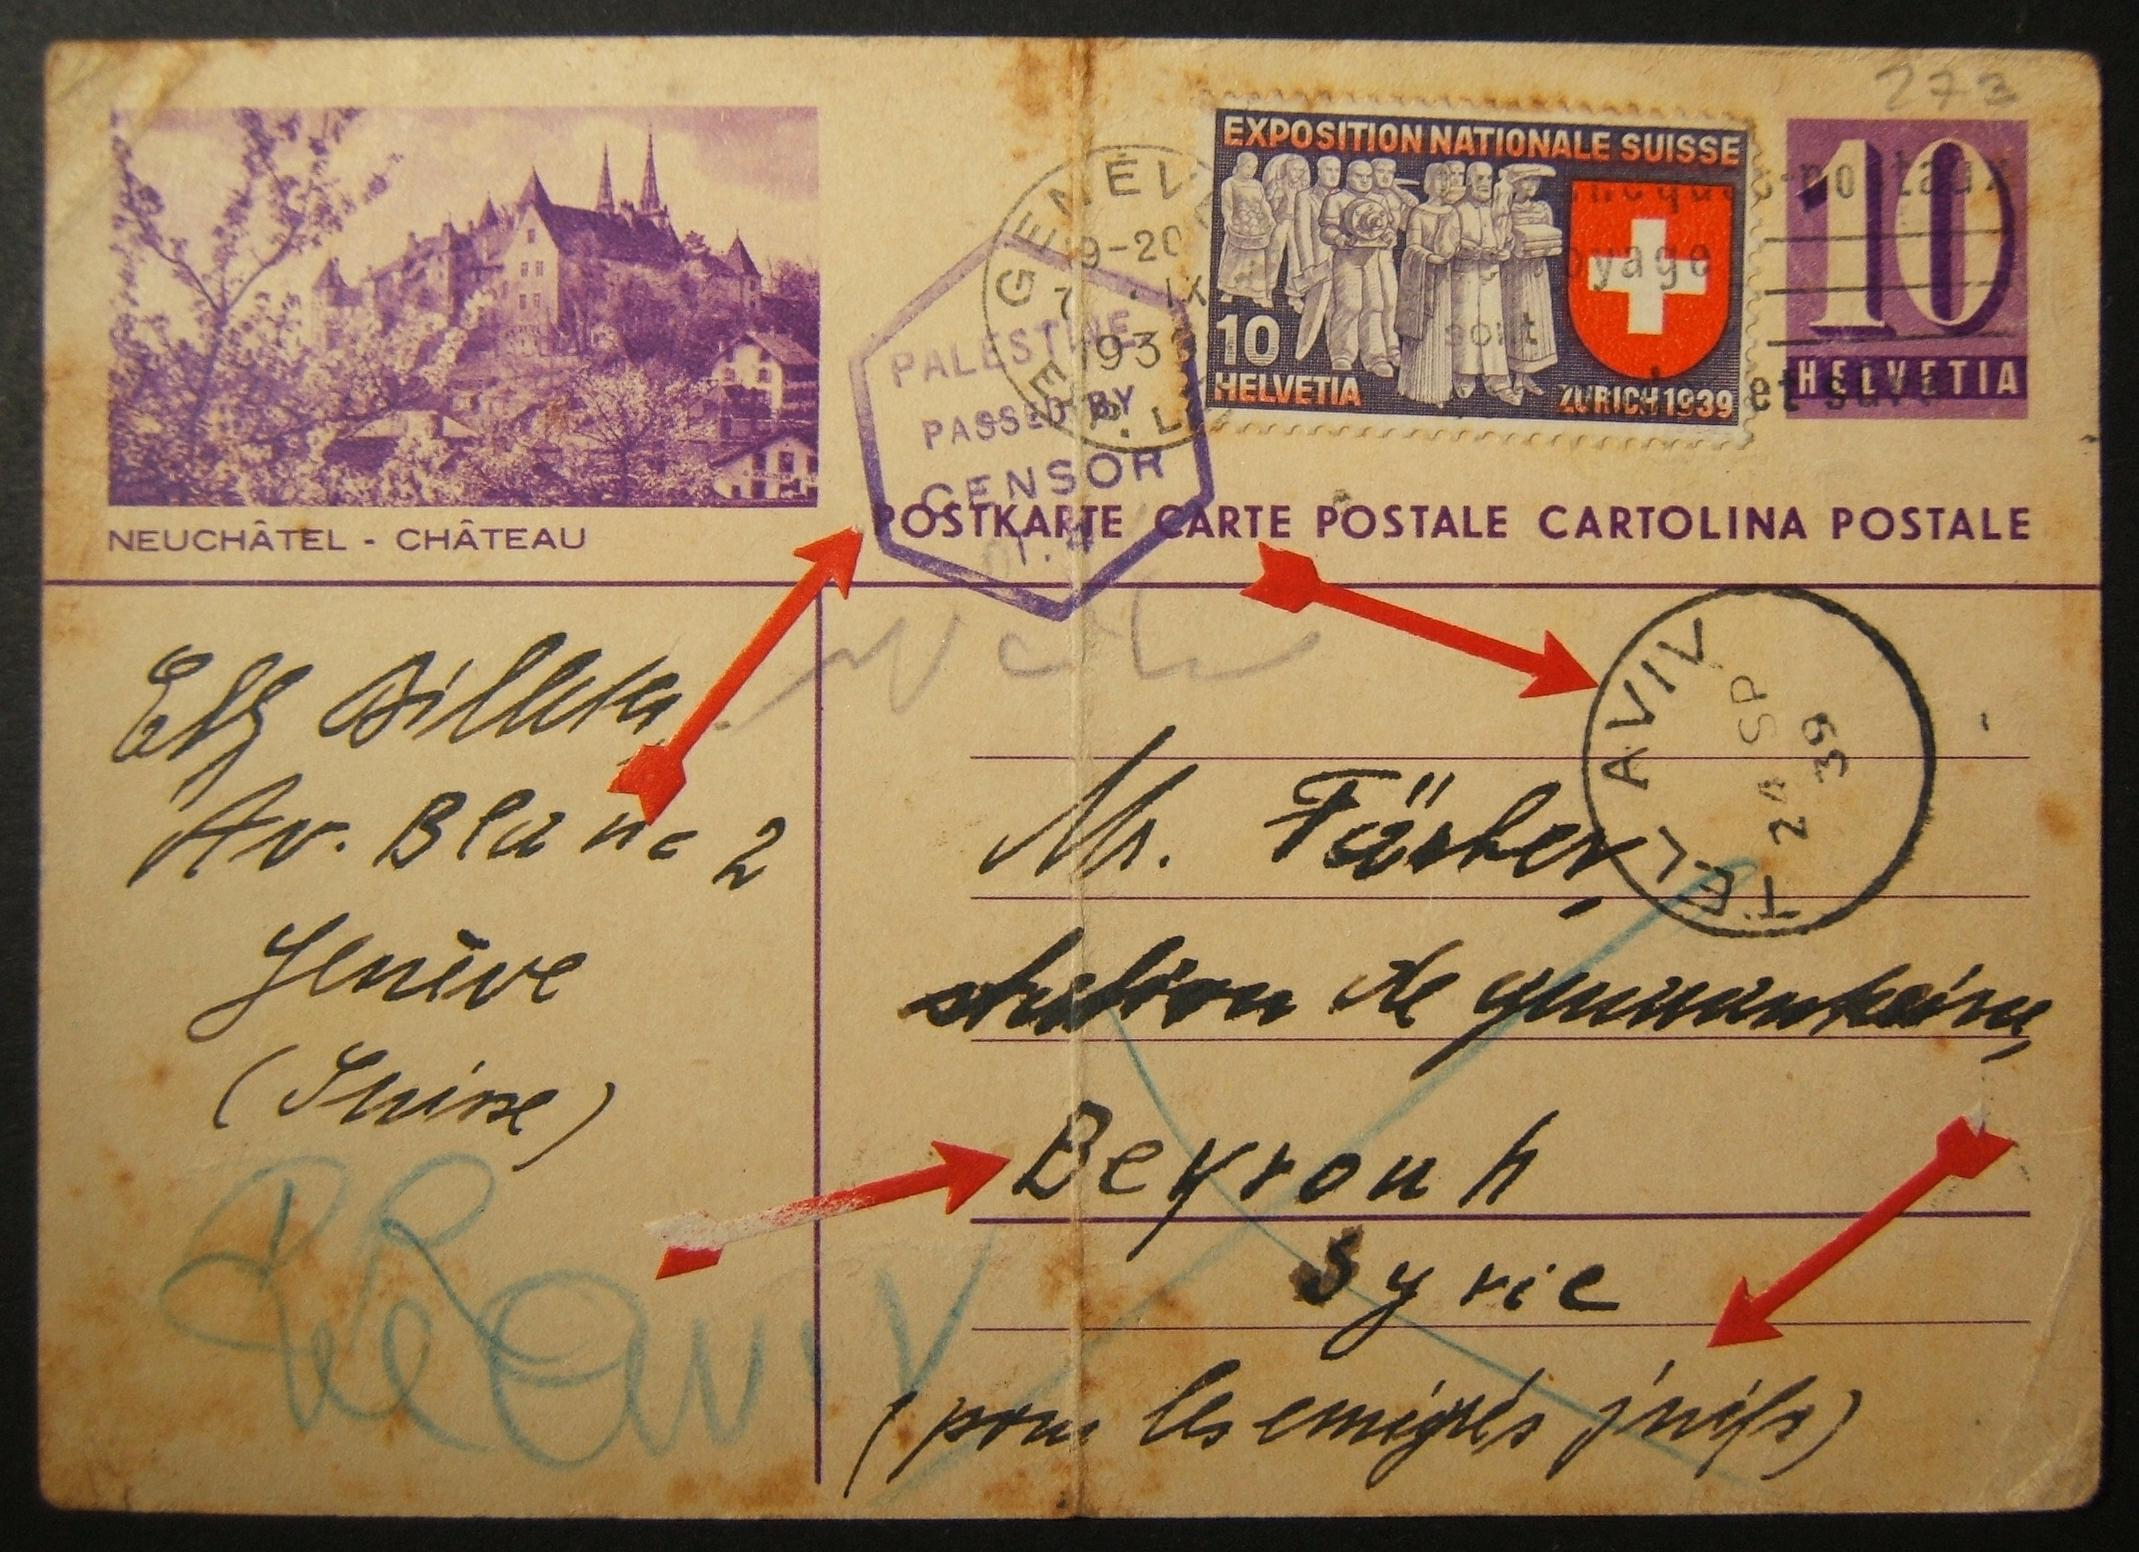 7-09-1939 start WWII Jewish airmail from GENEVA to BEIRUT, re-routed to TEL AVIV